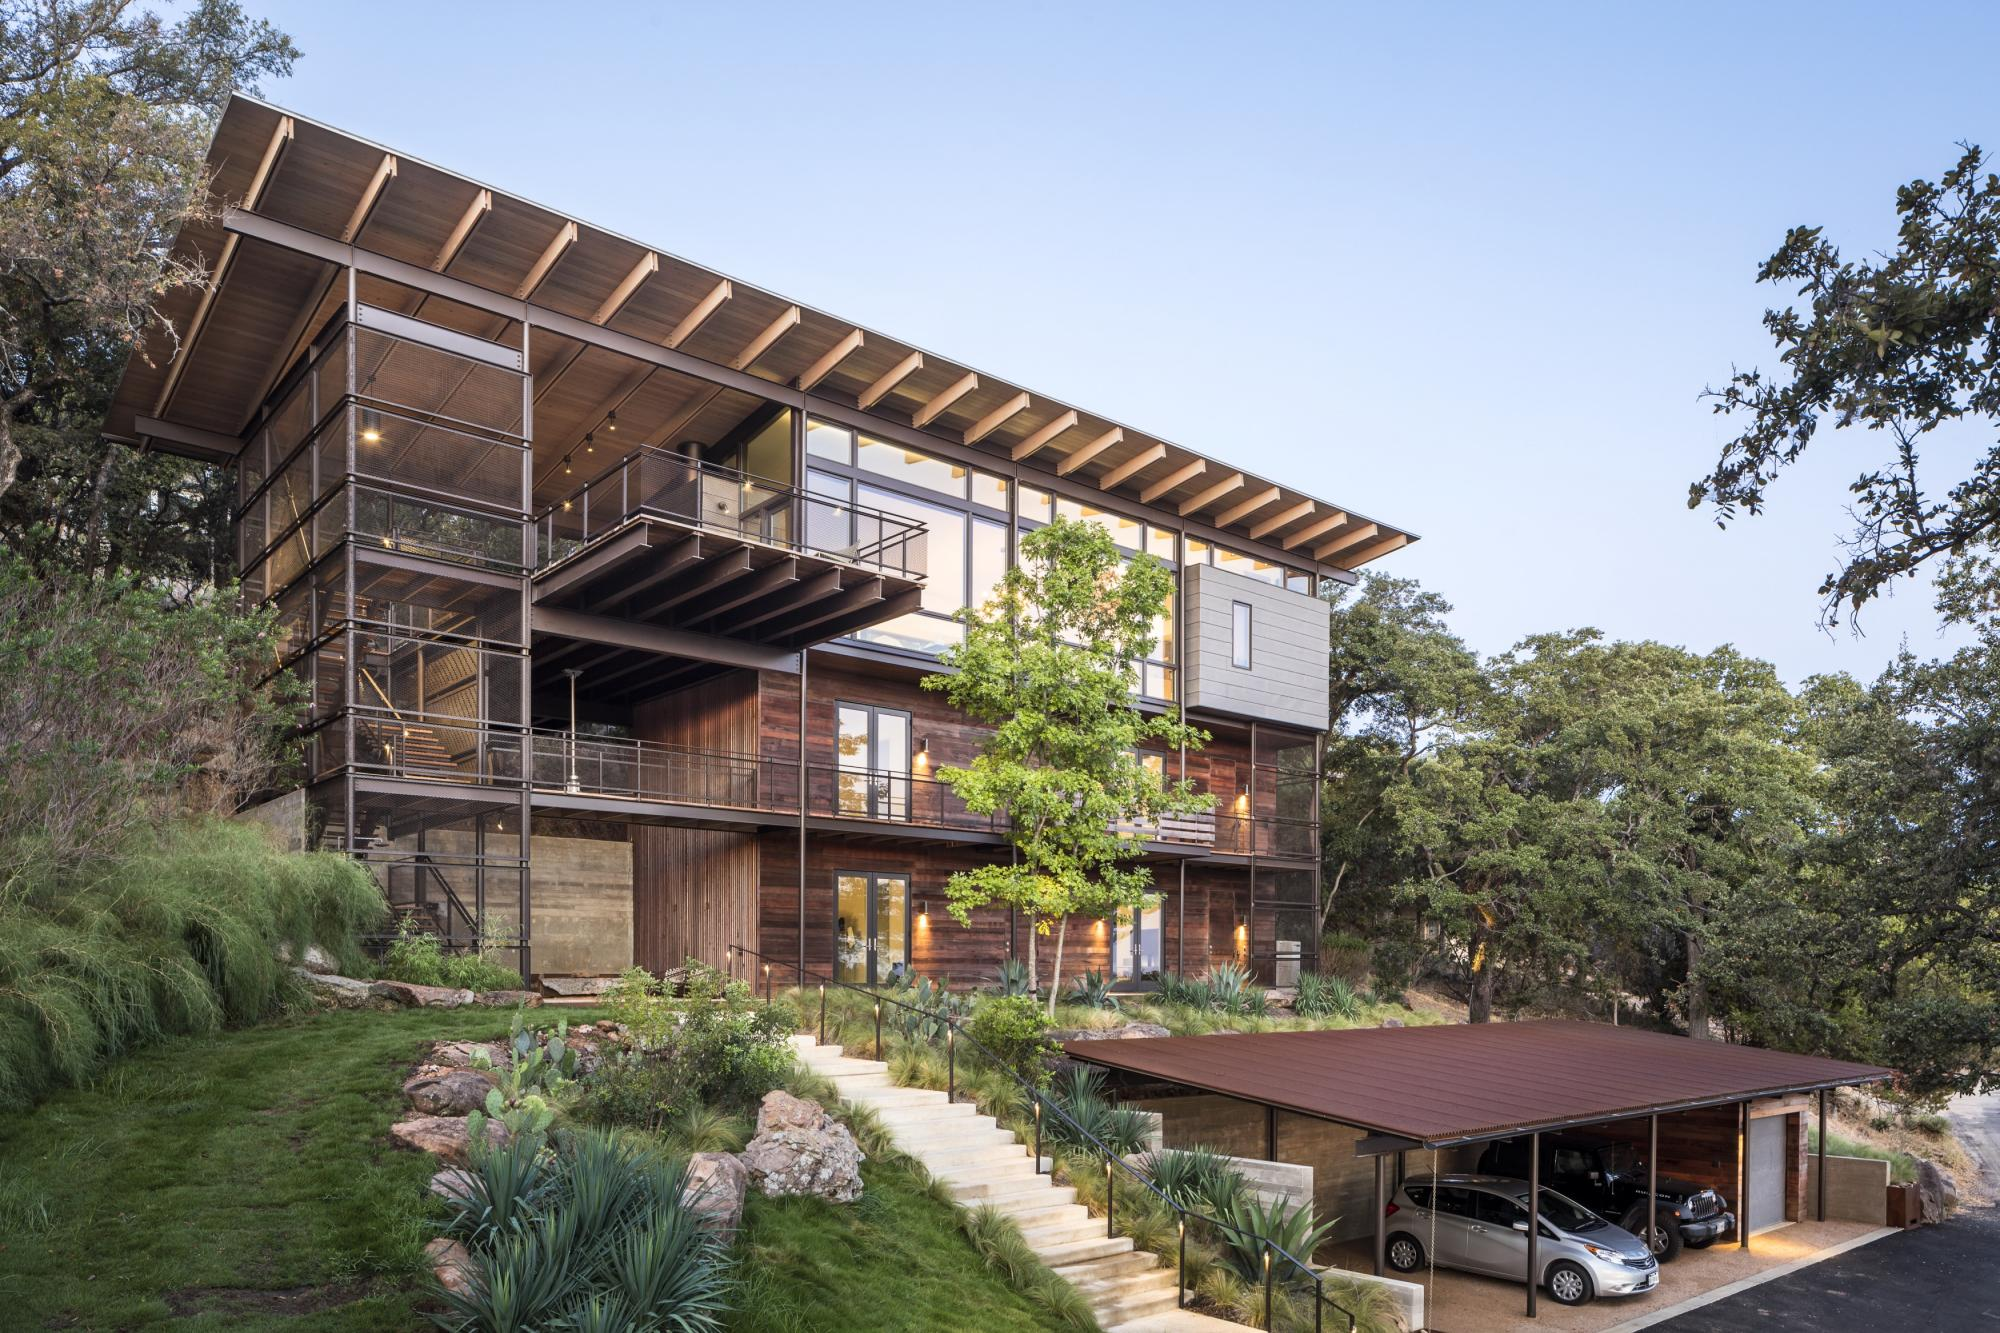 Materials were selected primarily for their durability and deliberately placed in response to sun and wind exposure at each elevation and orientation on the site